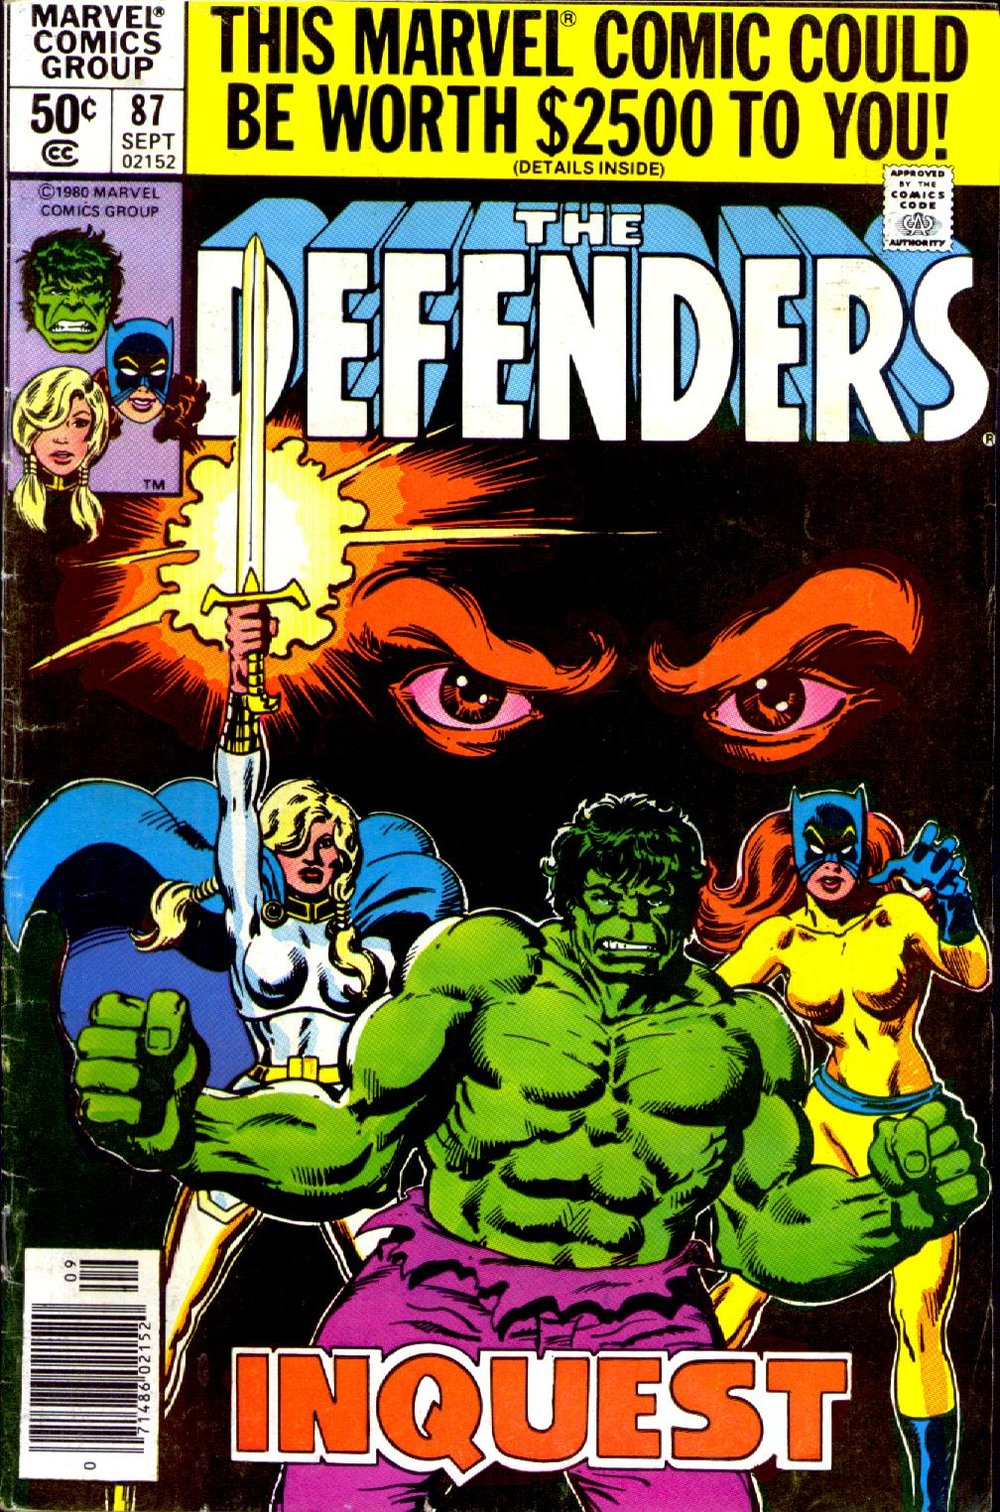 The Defenders (1972) #87, cover penciled by Mike Nasser & inked by Al Milgrom.